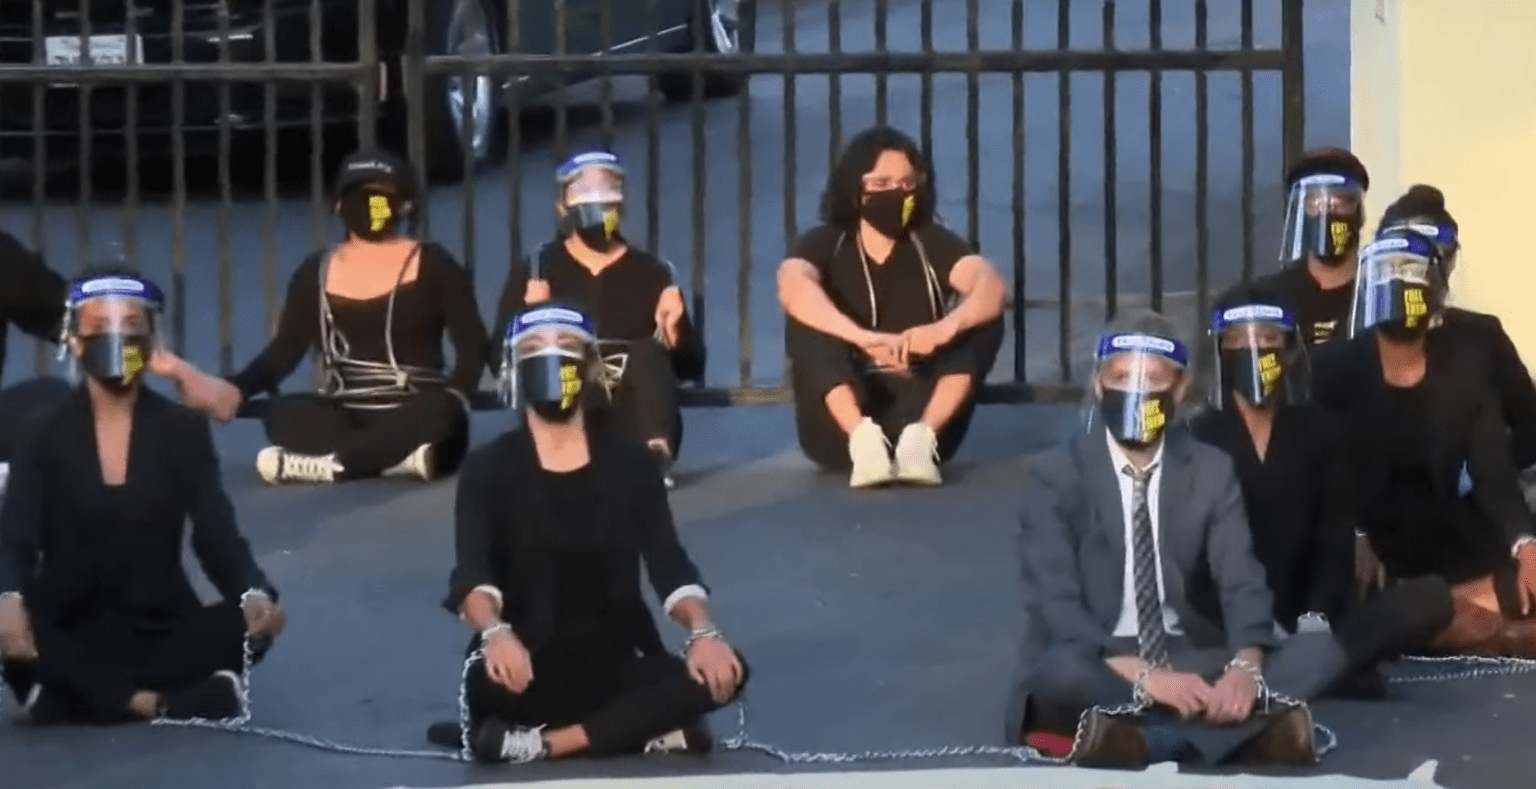 Not at my home: Protestors demanding 'release all prisoners' arrested at California governor's house